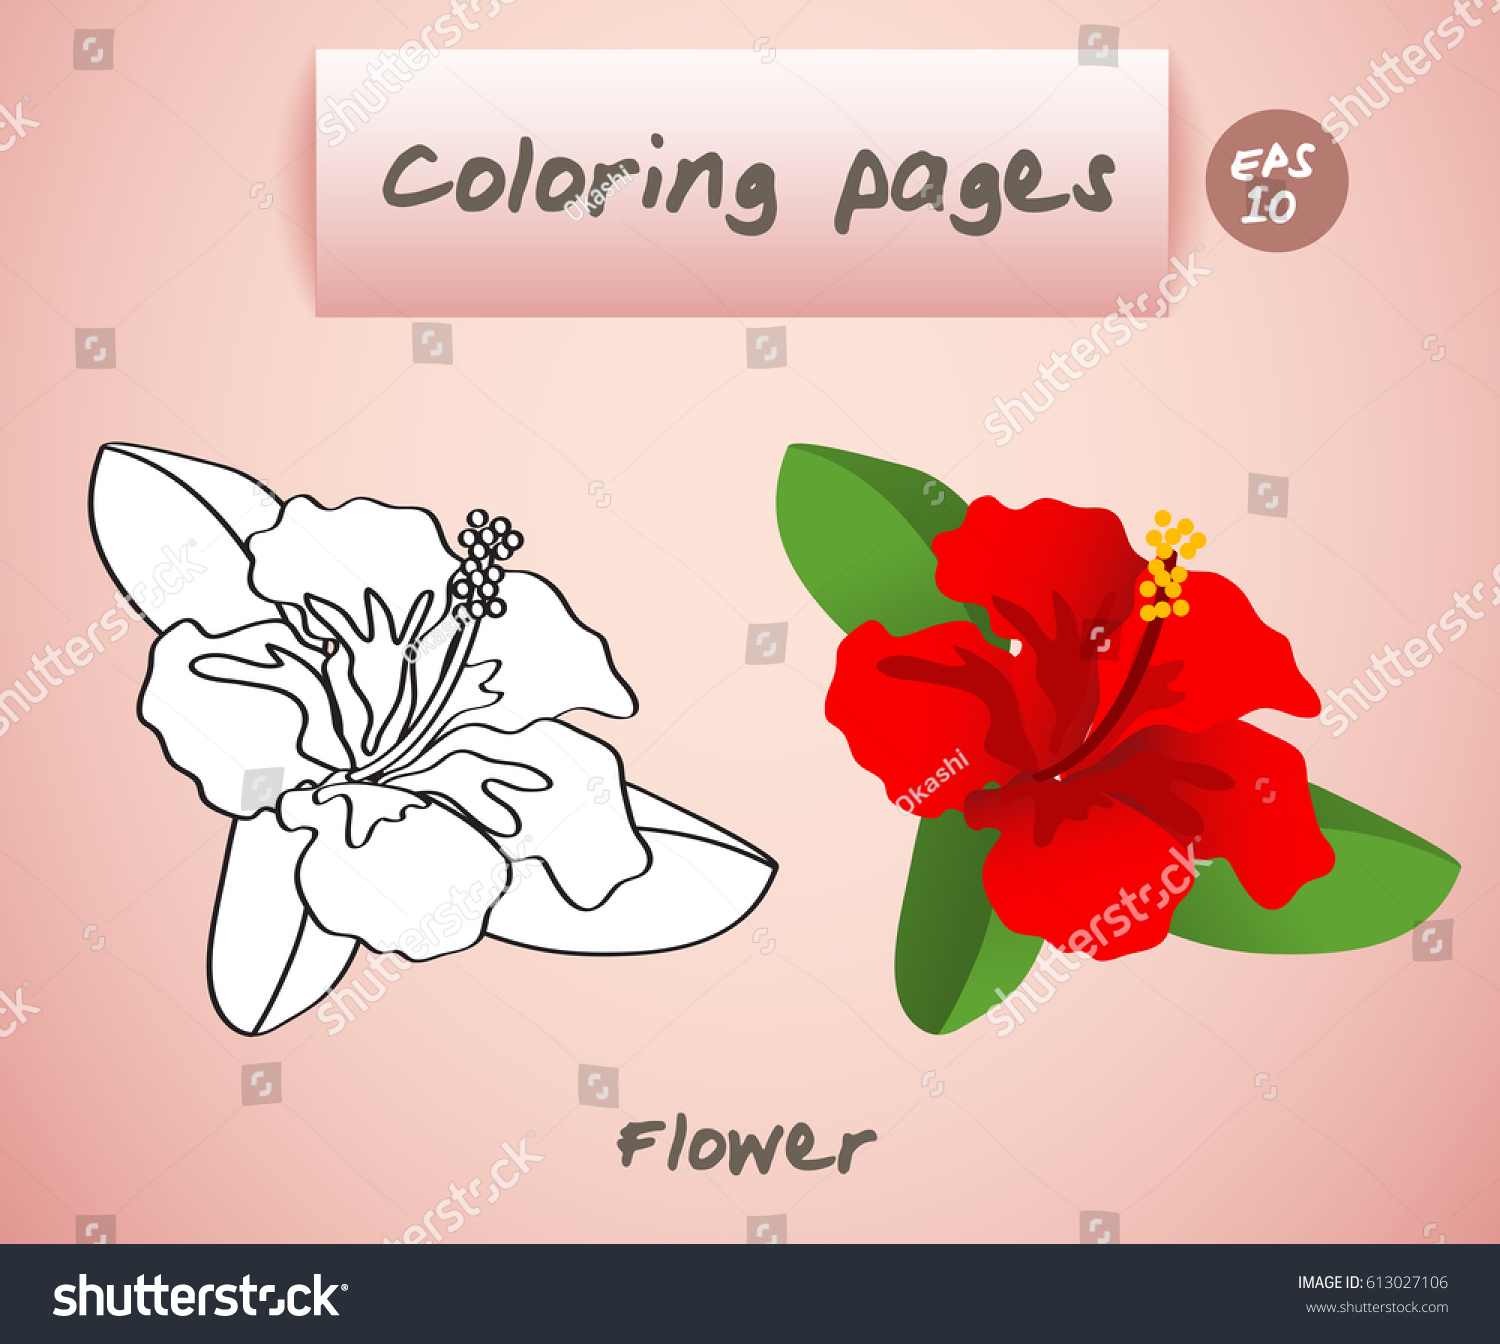 Coloring Book Pages Kids Flower Vector Stock Vector HD (Royalty Free ...